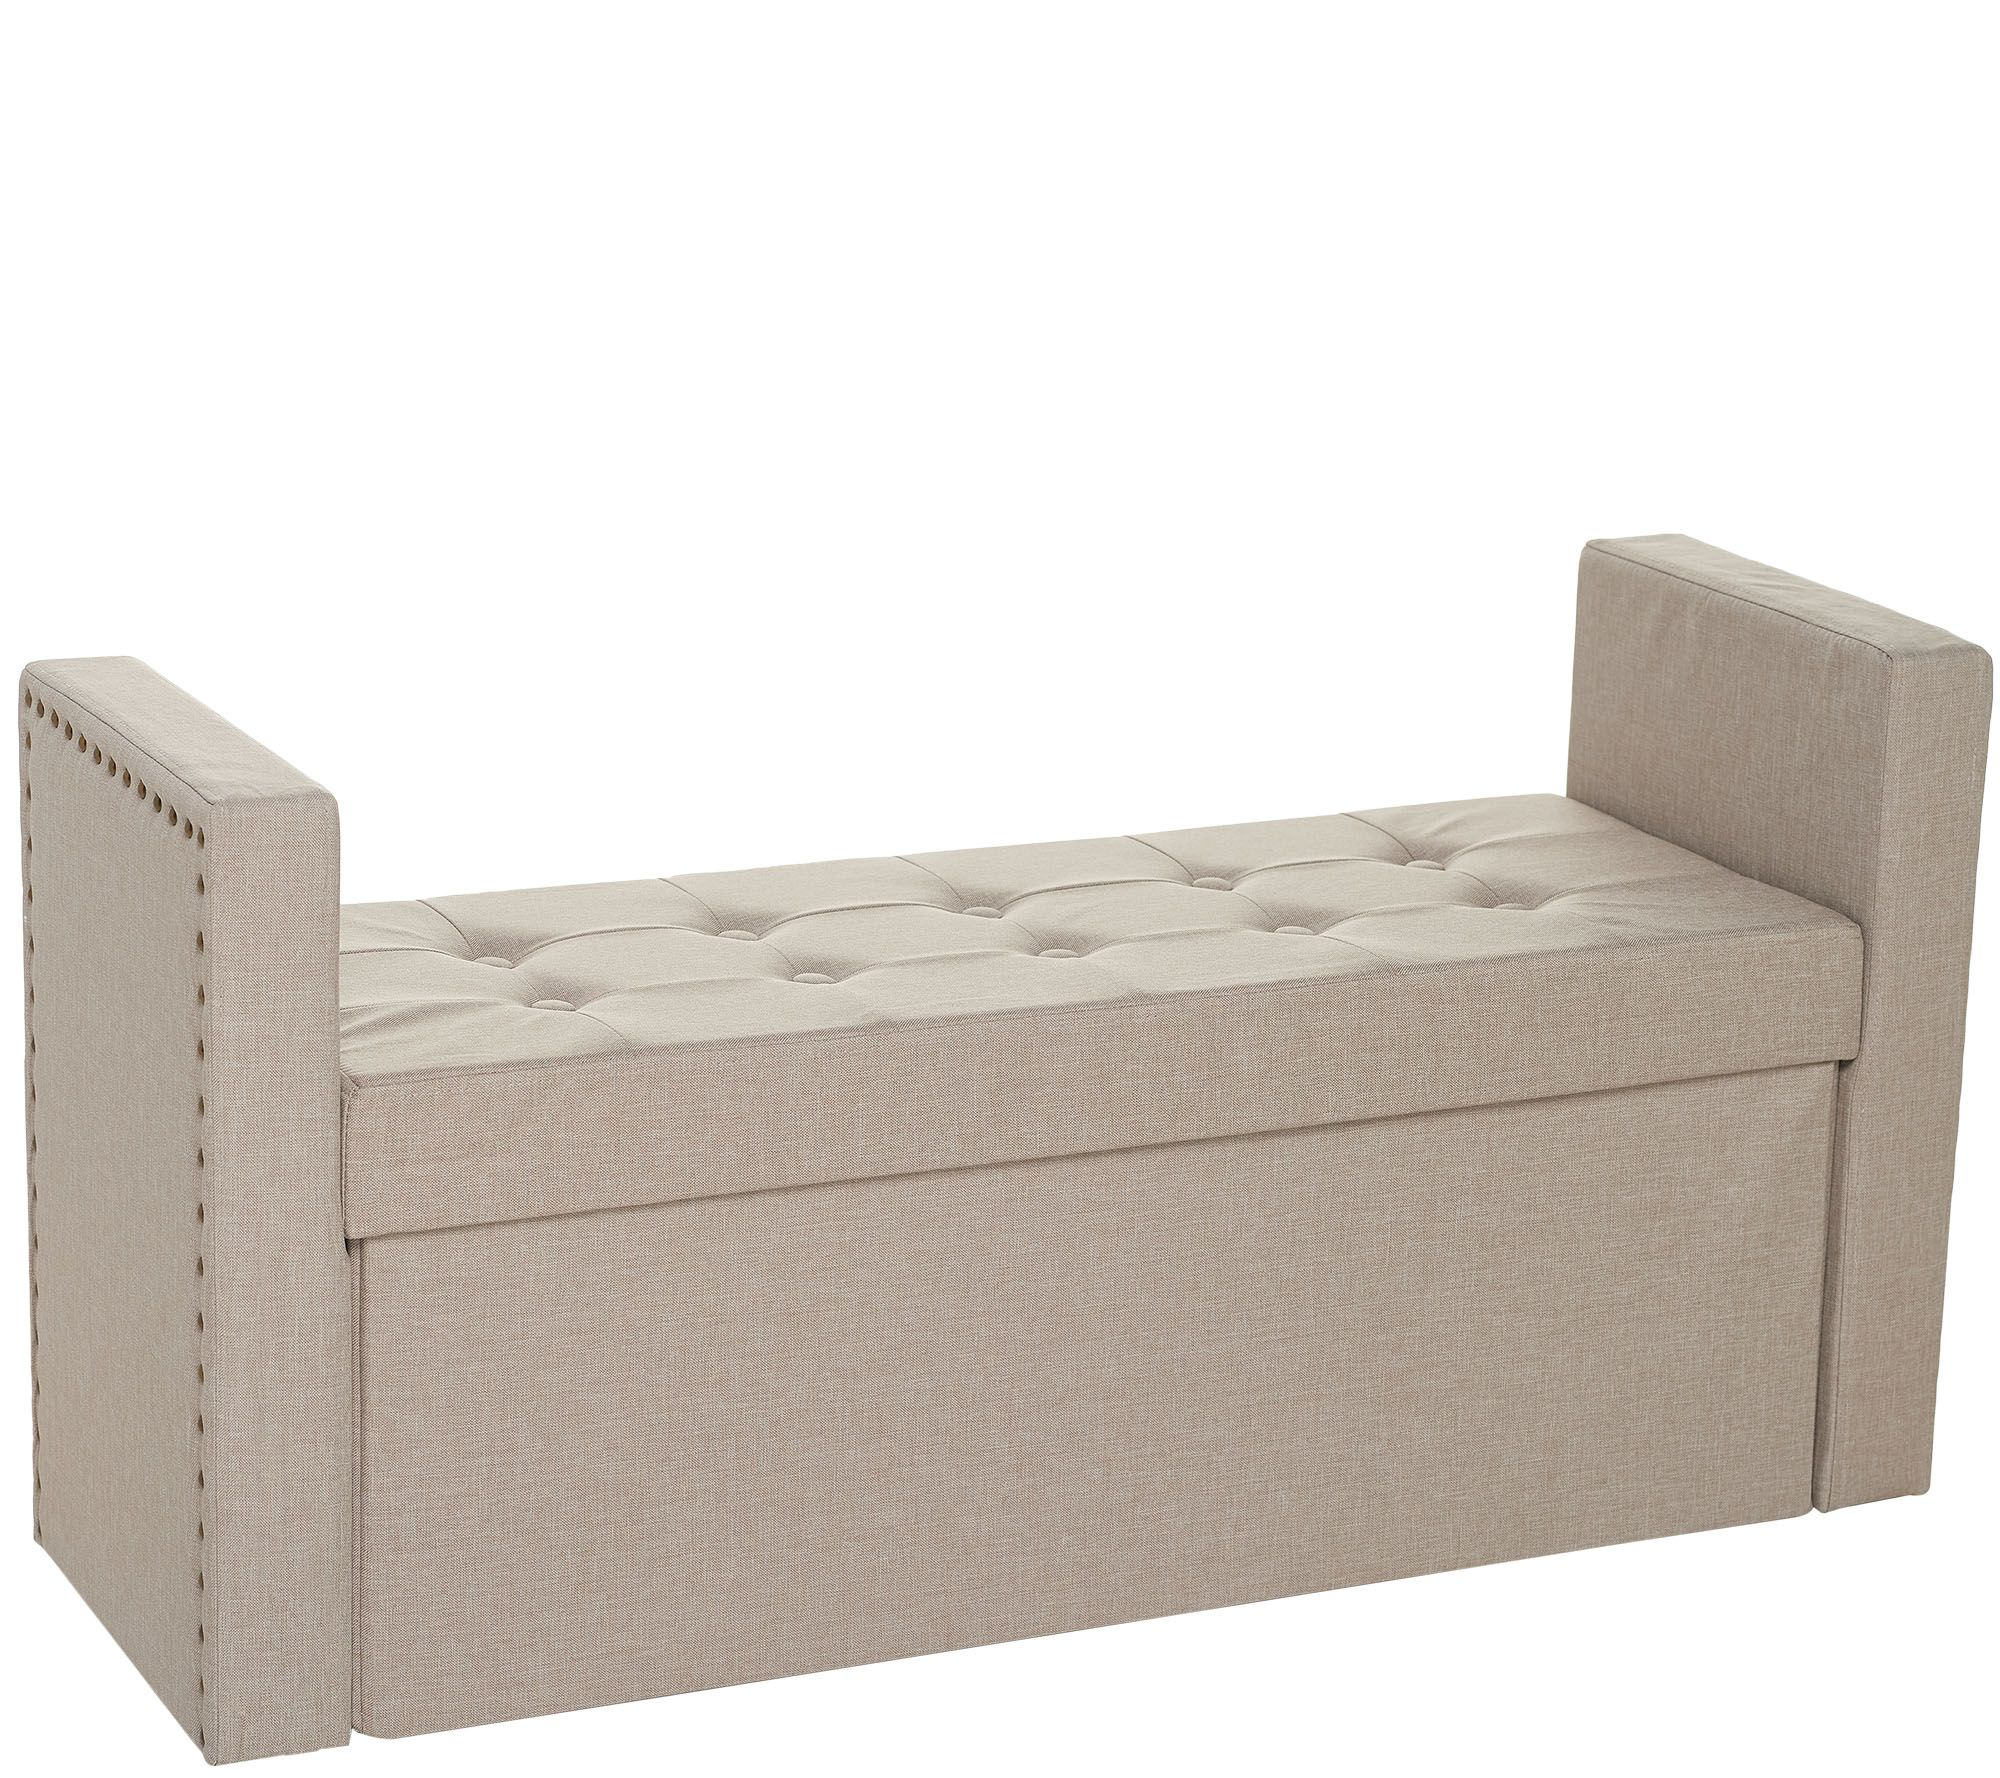 Inspire Me Home Decor 45 Collapsible Storage Bench With